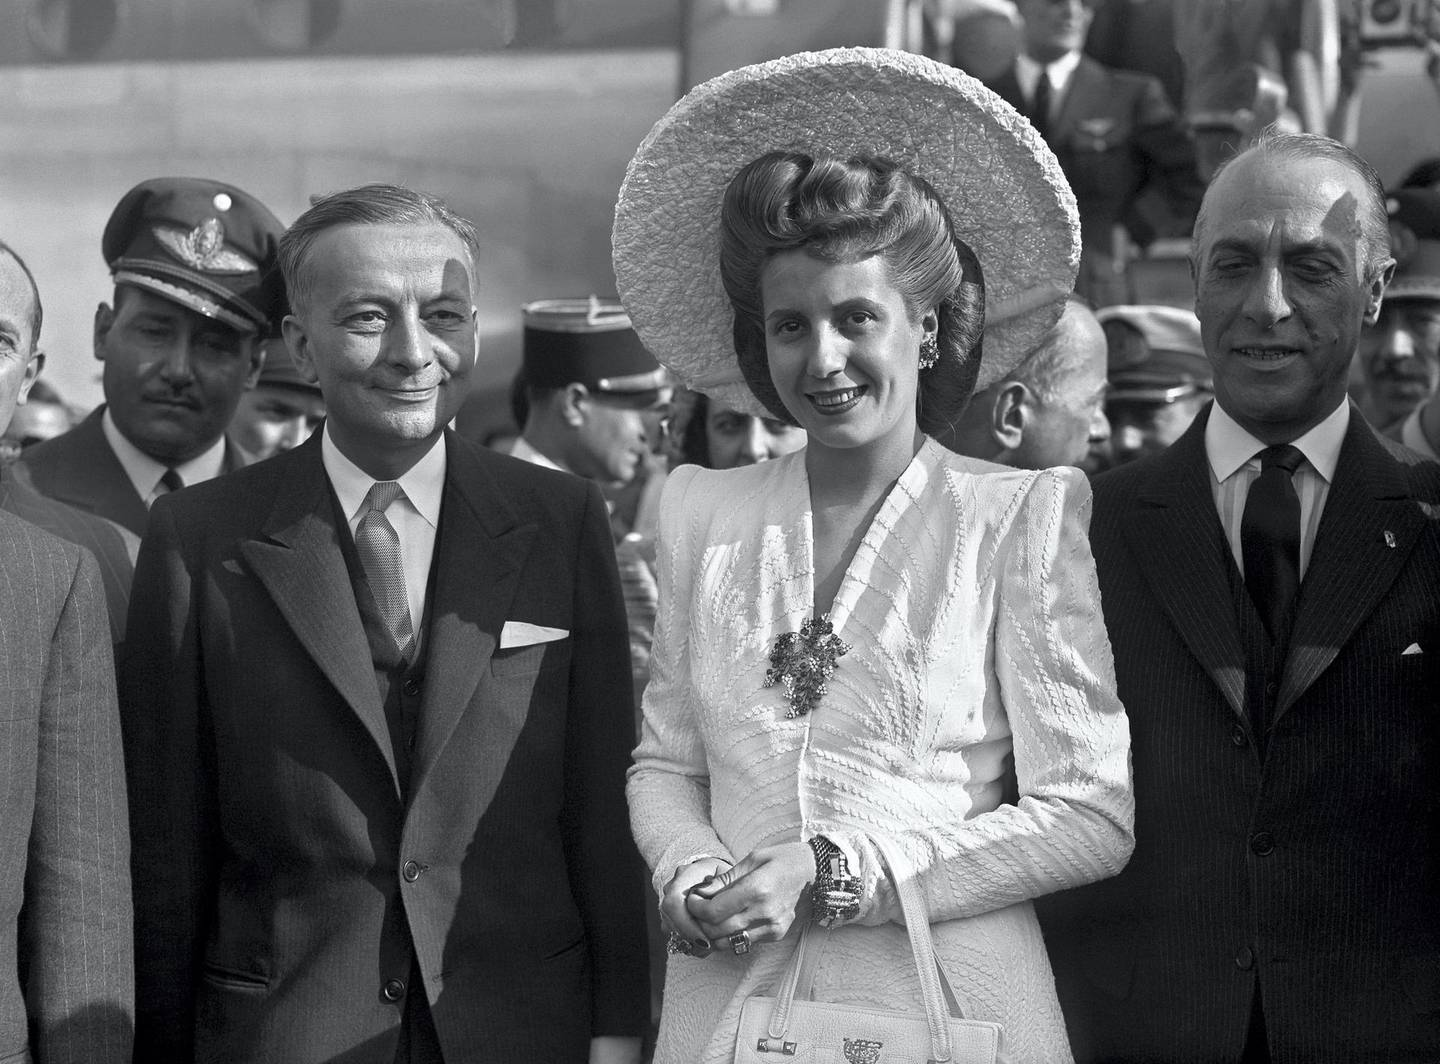 French foreign minister Georges Bidault (R) greets Argentinean Eva Peron, 21 July 1947, as she arrives at Orly airport for a visit in France. Eva Peron, known as Evita (1919-1952), the second wife of Argentine President Juan Peron, was a radio and screen actress before her marriage in 1945. She became a powerful political influence and a mainstay of the Peron government. She was idolized by the poor, and after her death, in Buenos Aires, support for her husband waned. AFP PHOTO / AFP PHOTO / PIGISTE